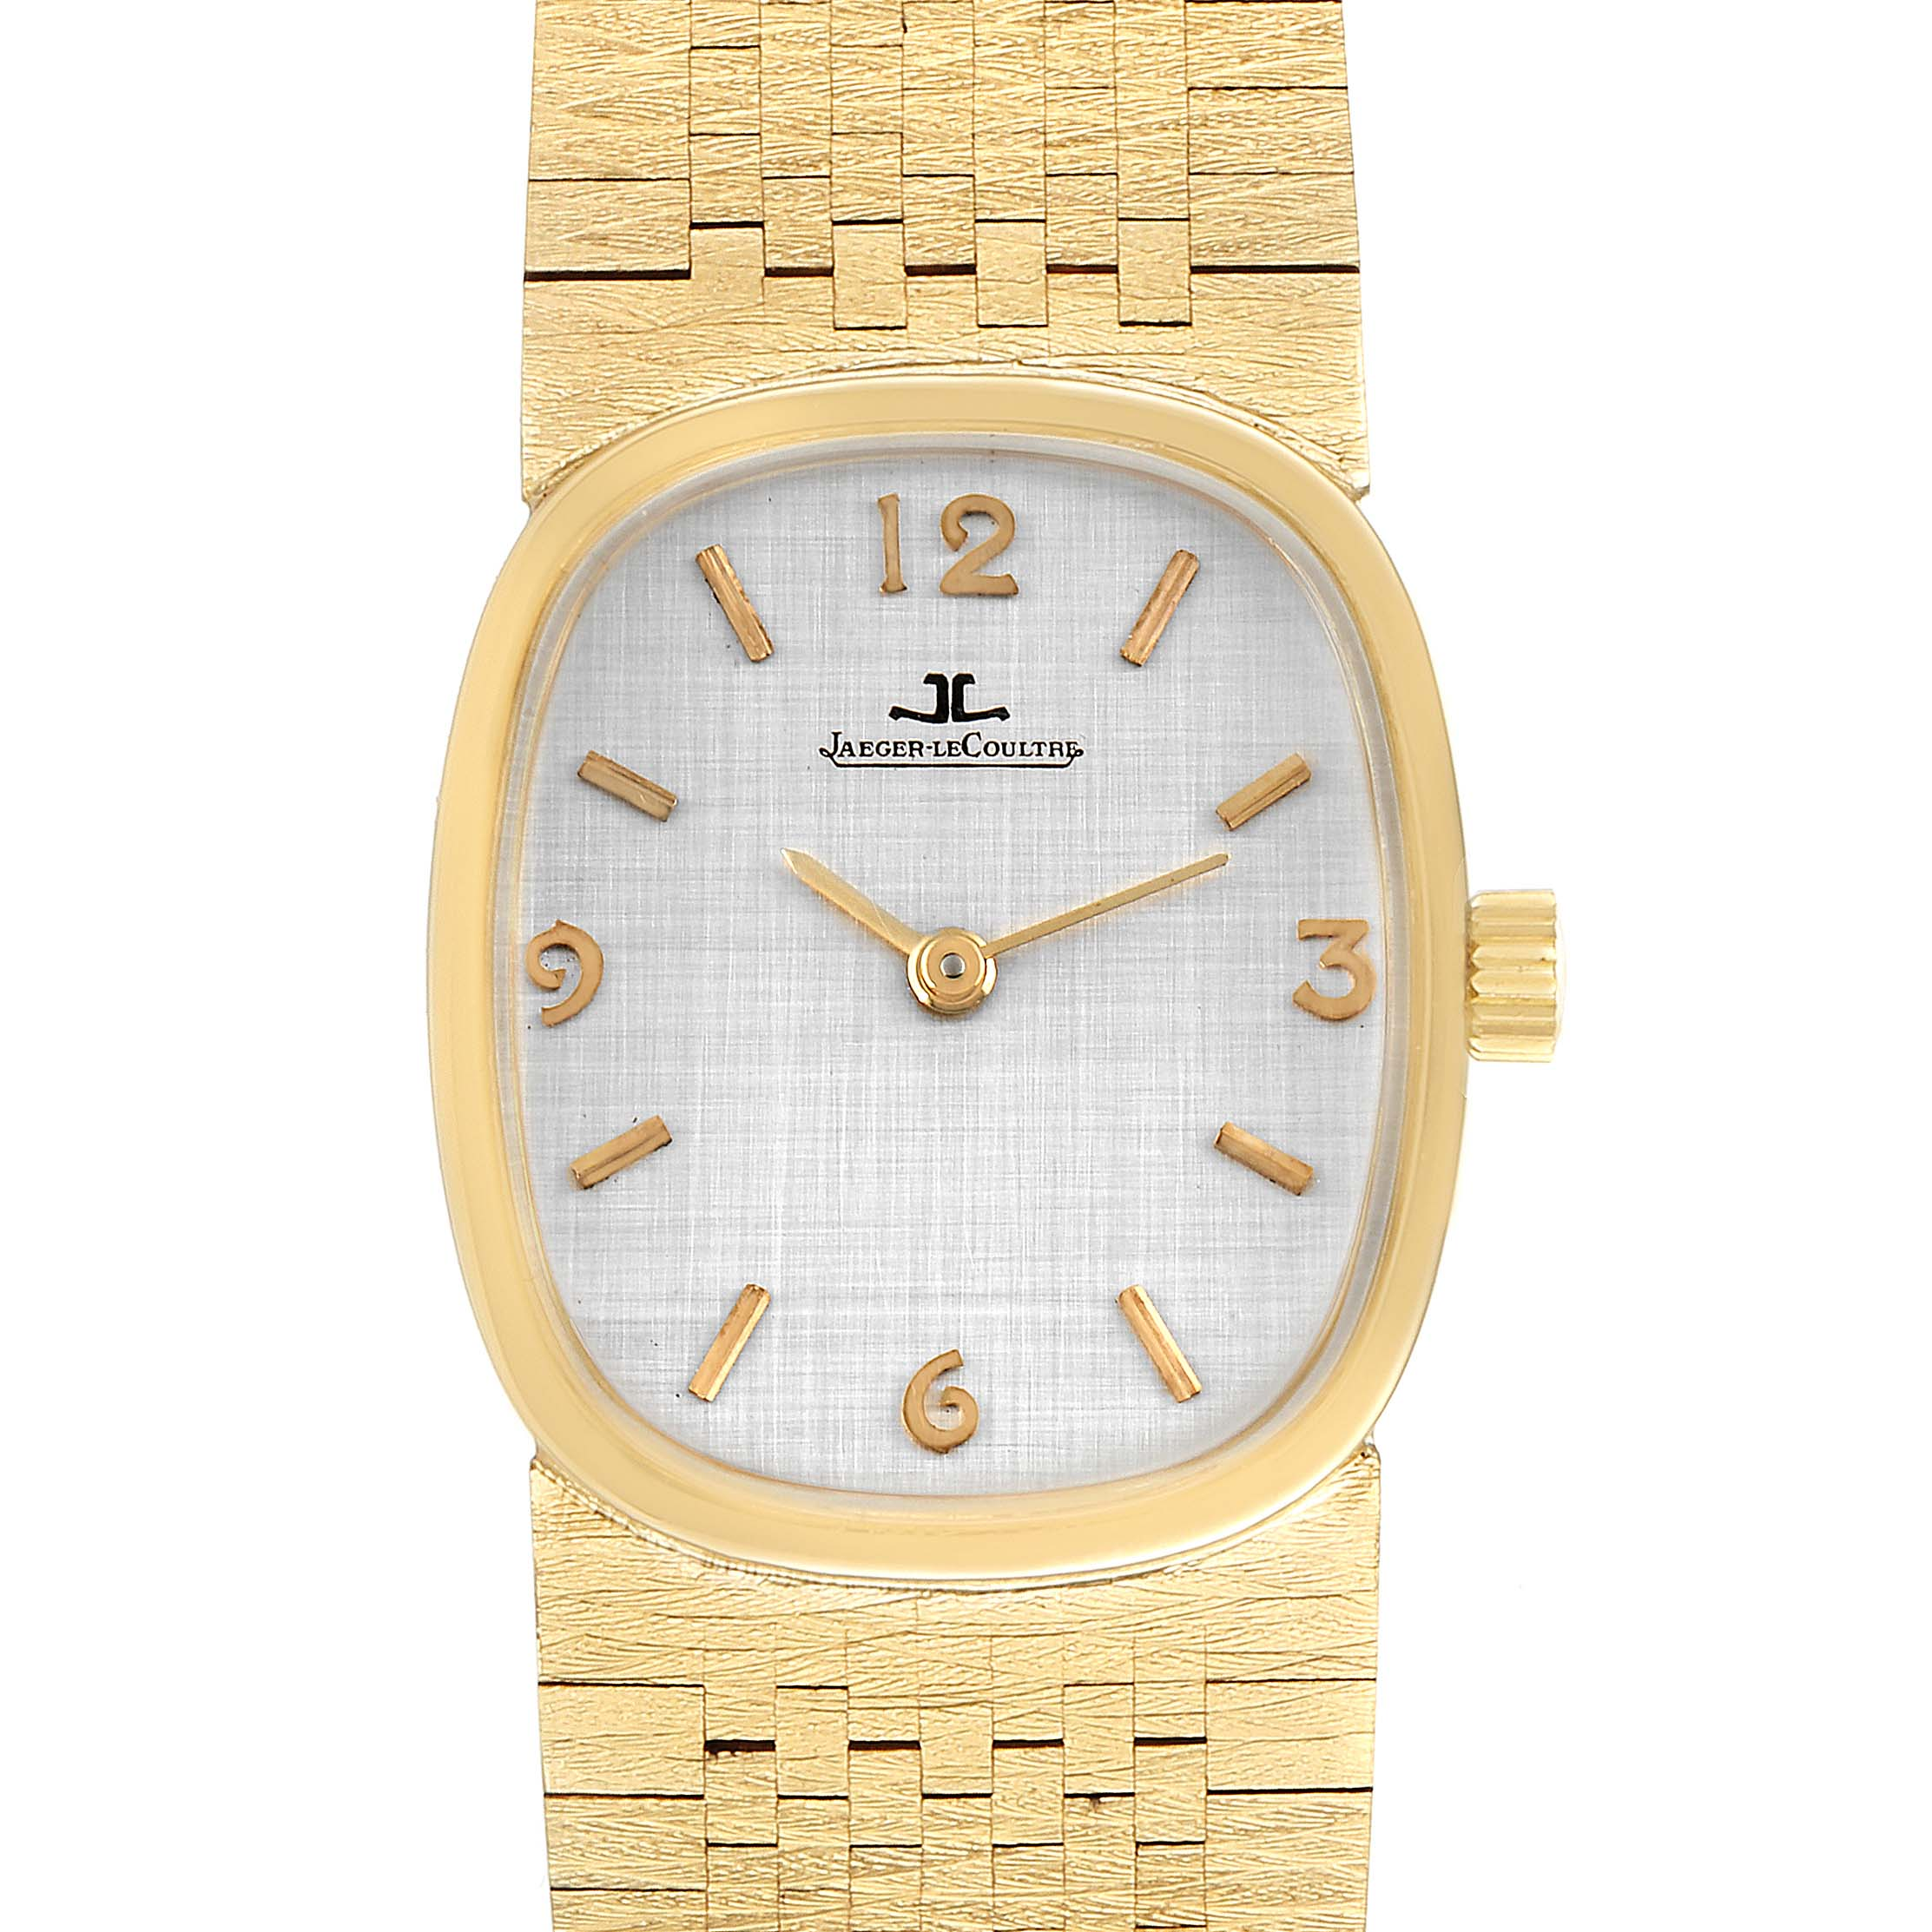 Jaeger LeCoultre 14k Yellow Gold Manual Vintage Mens Watch SwissWatchExpo